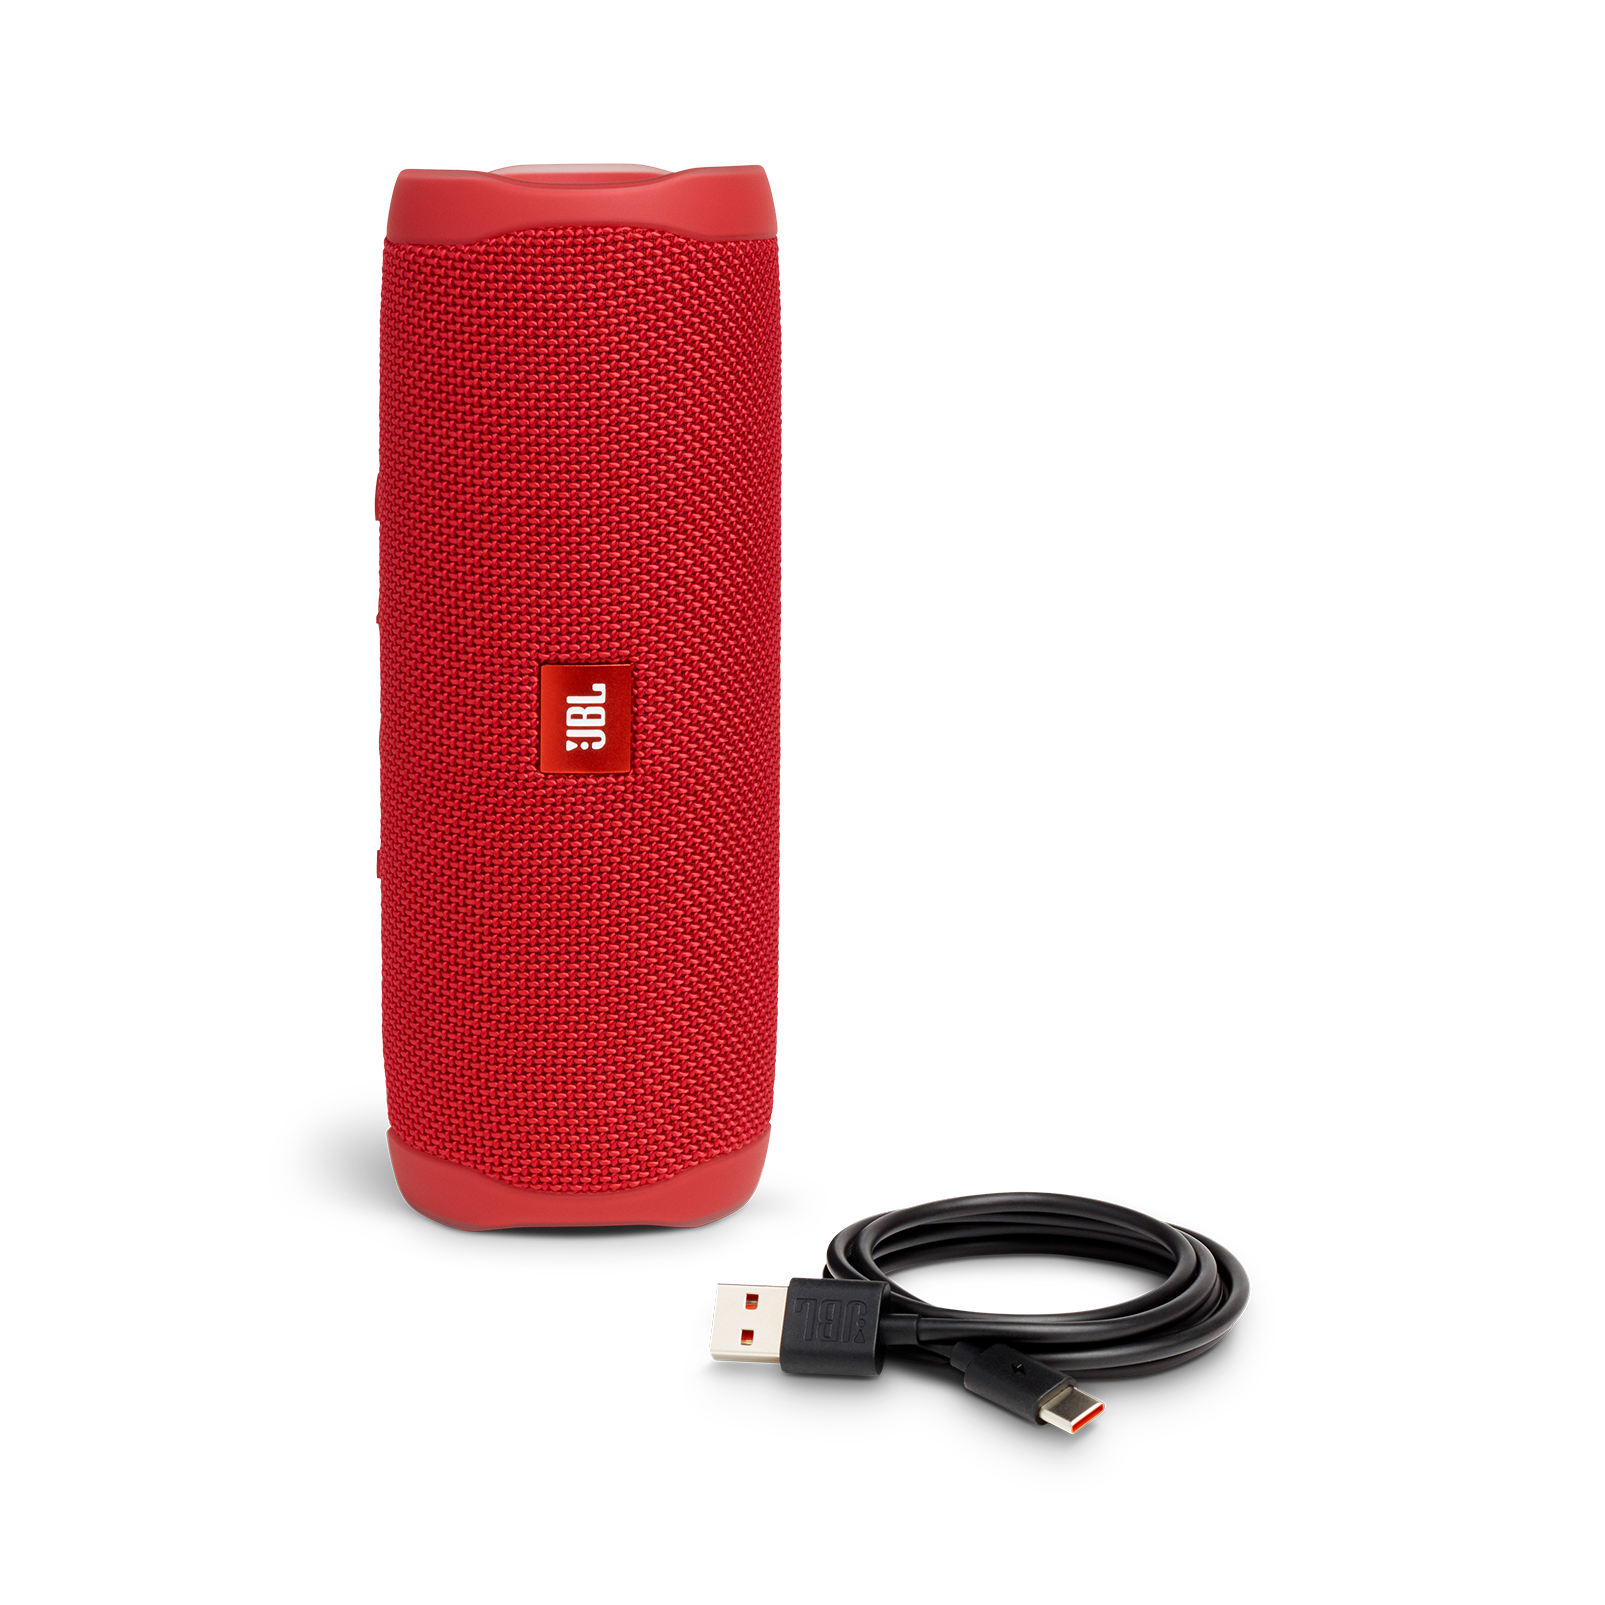 JBL FLIP 5 - Red - Portable Waterproof Speaker - Detailshot 1